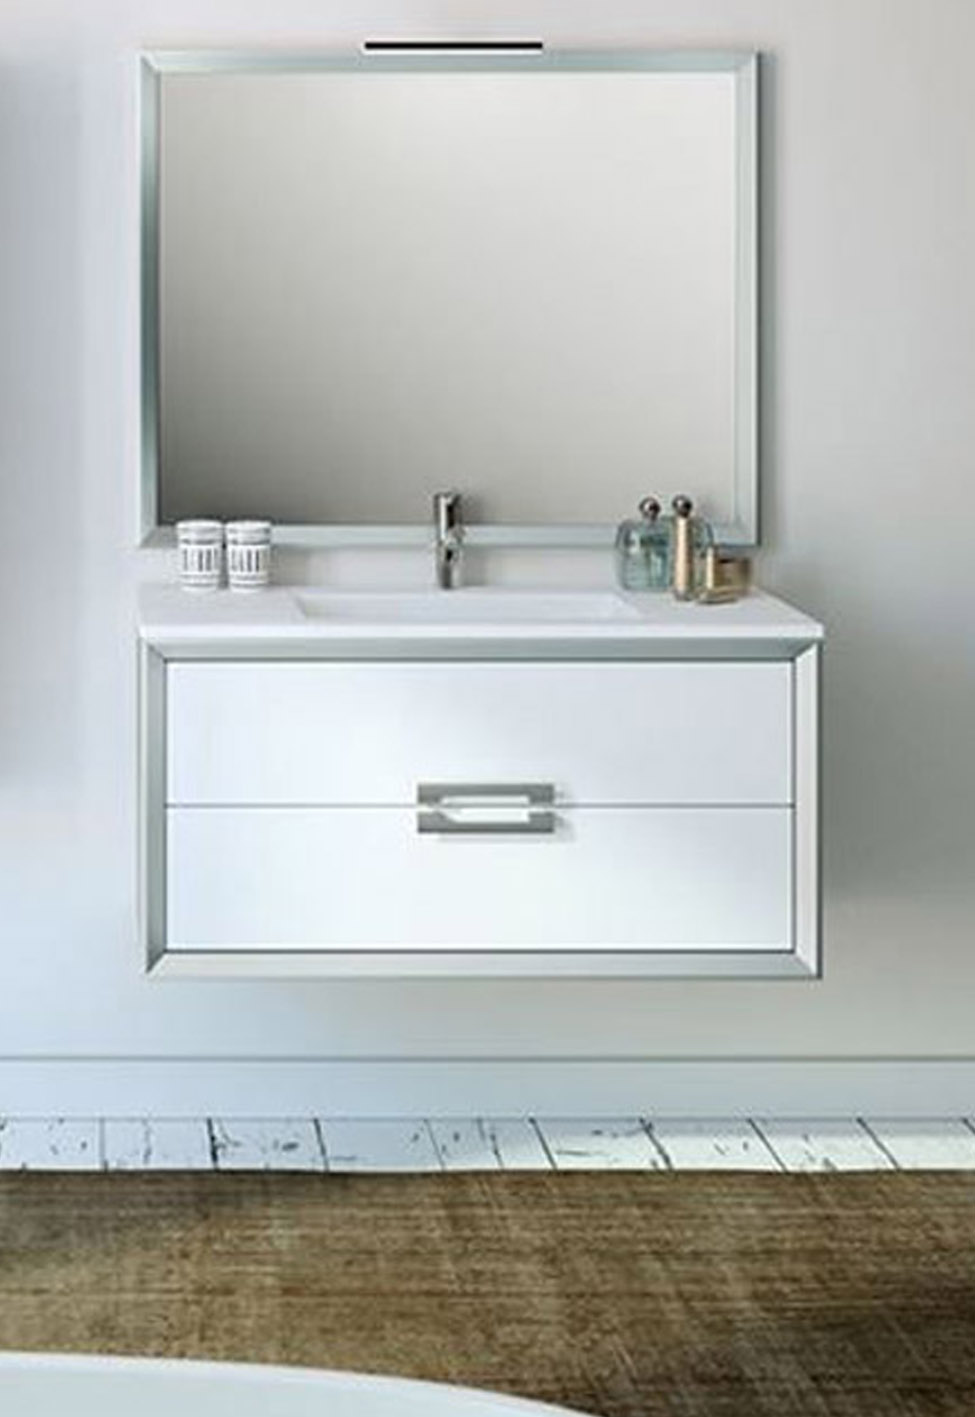 "40"" Single Sink Bathroom Vanity 2 Drawer with Ceramic Sink"